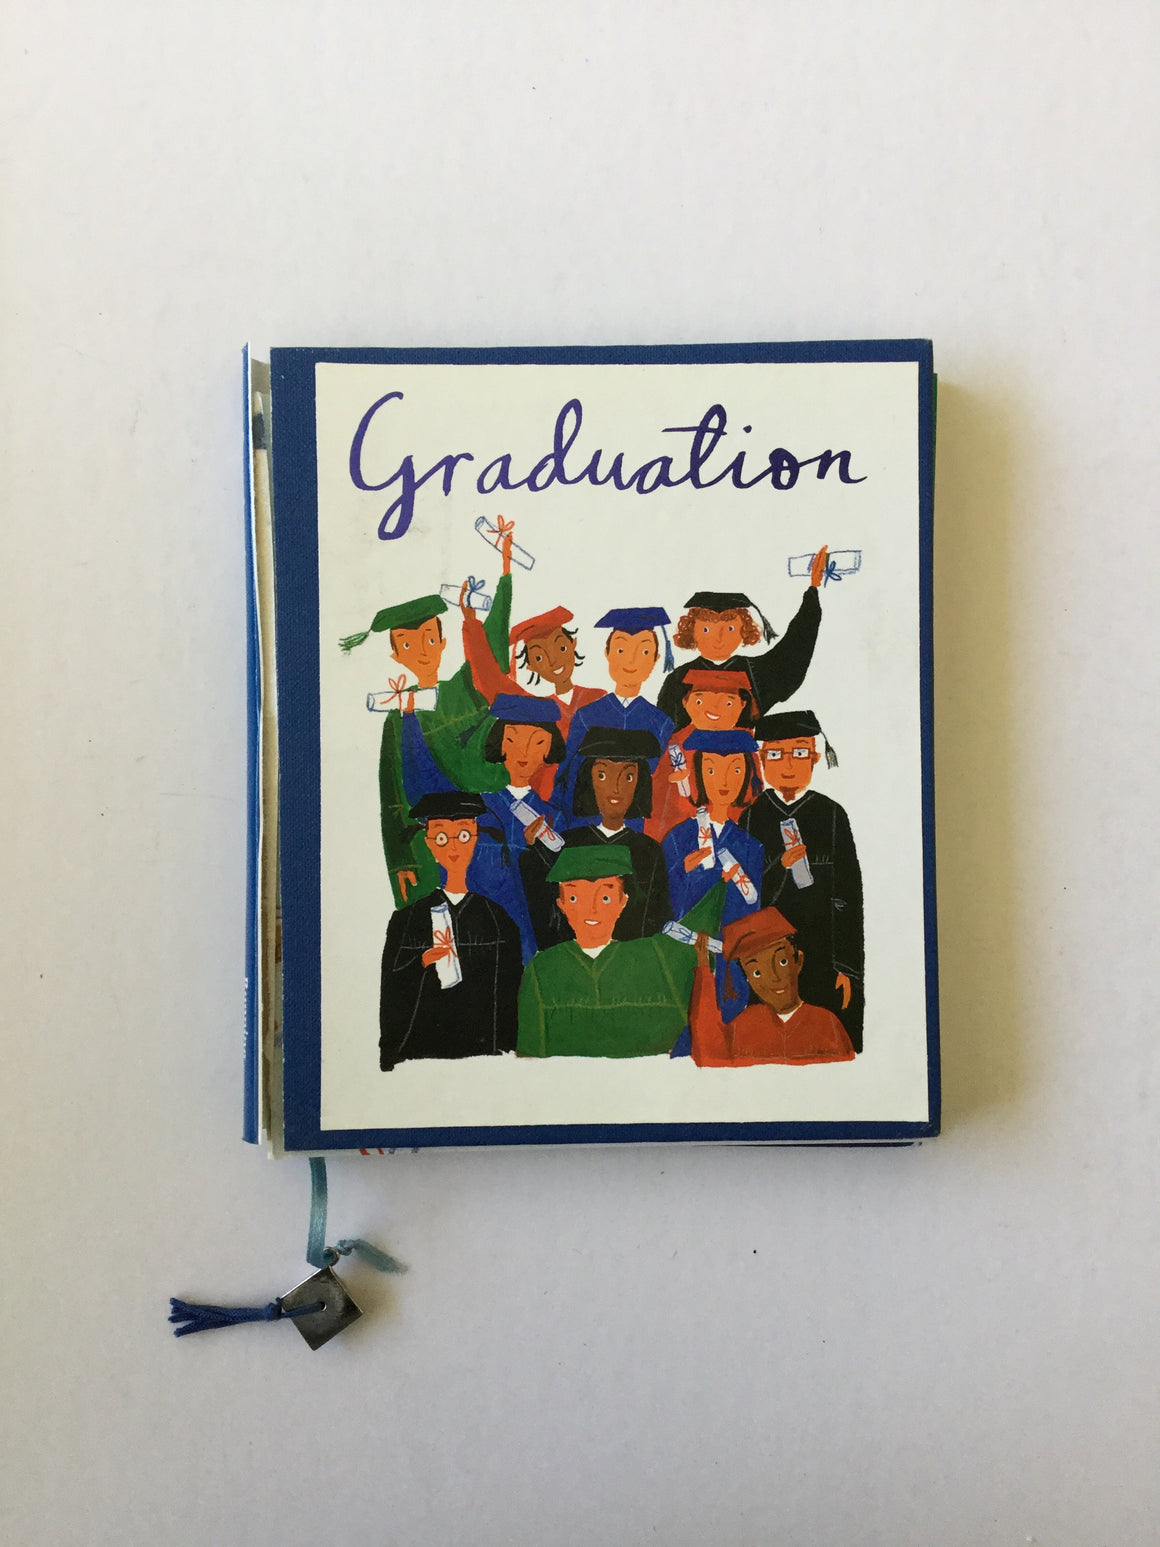 Graduation-Red Barn Collections